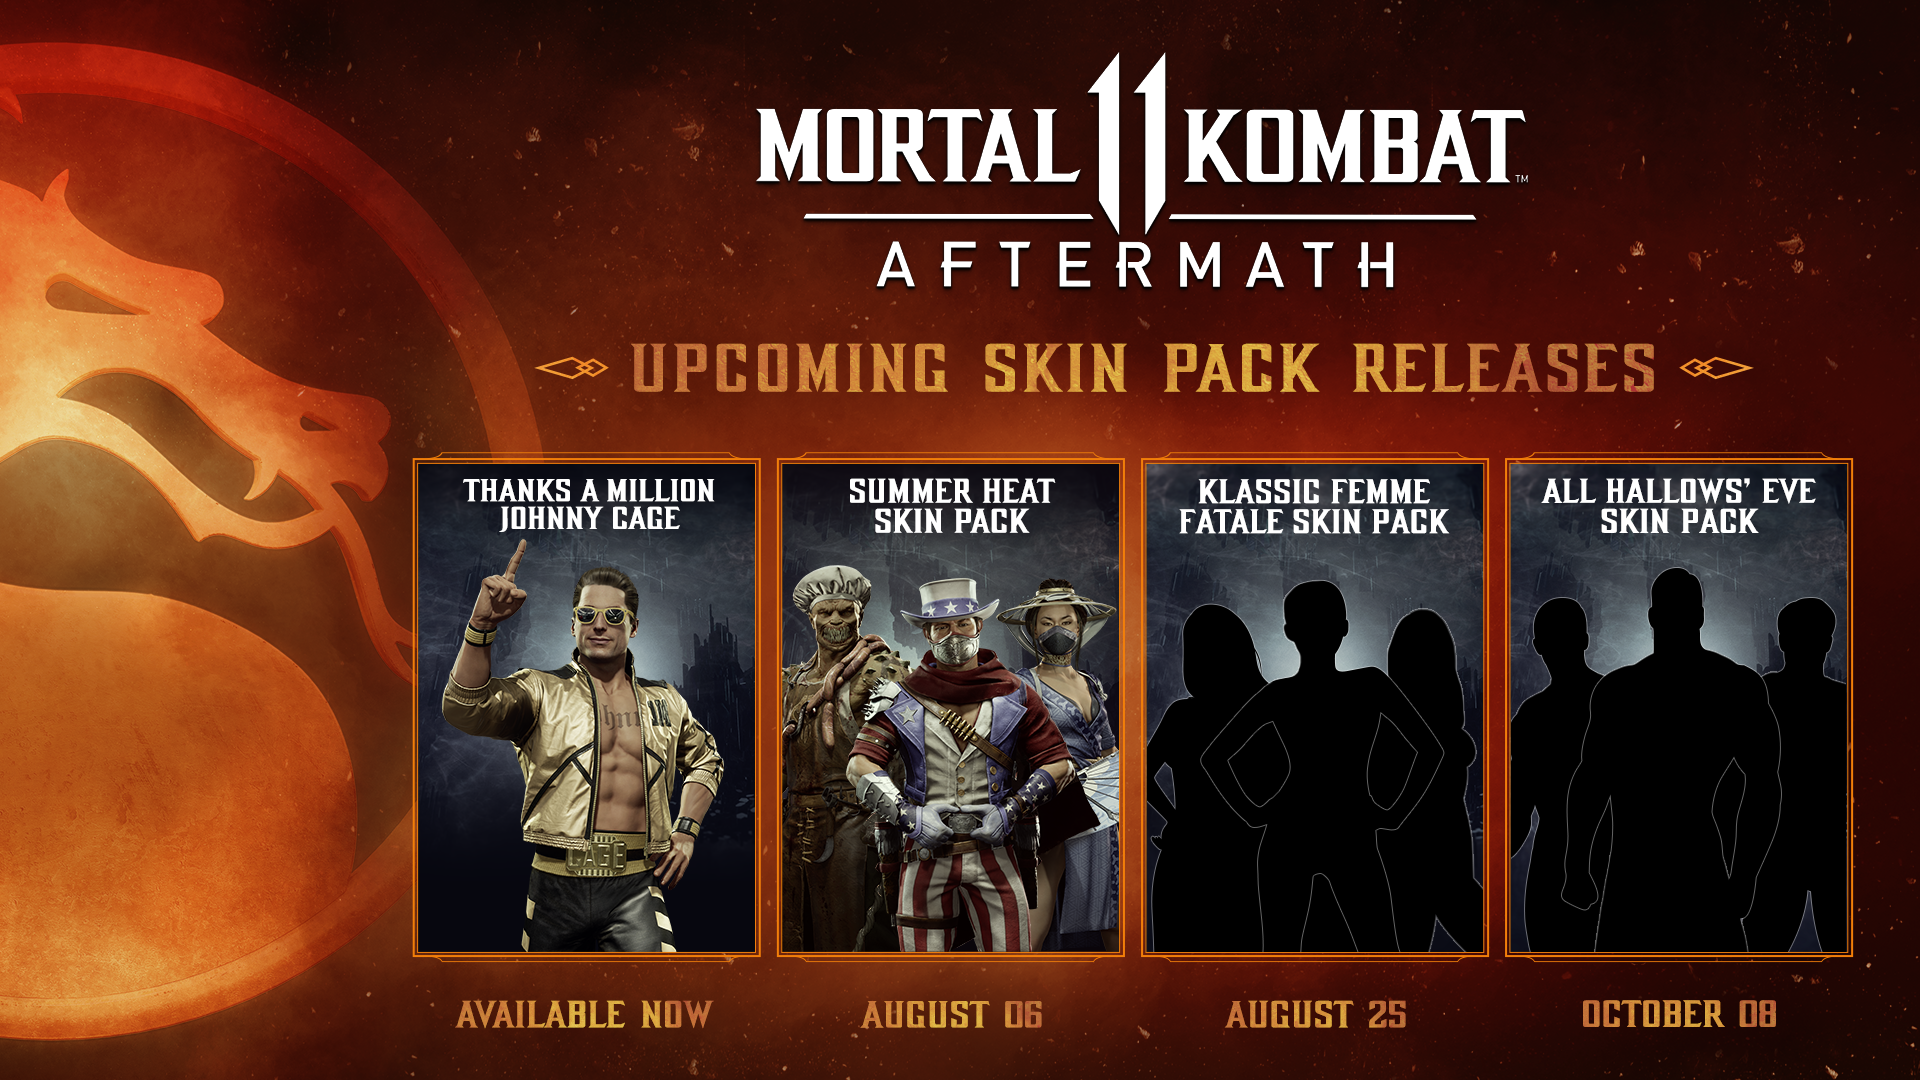 New Summer Themed Character Skin Pack Coming Aug 6 as Part of Mortal Kombat 11: Aftermath Expansion